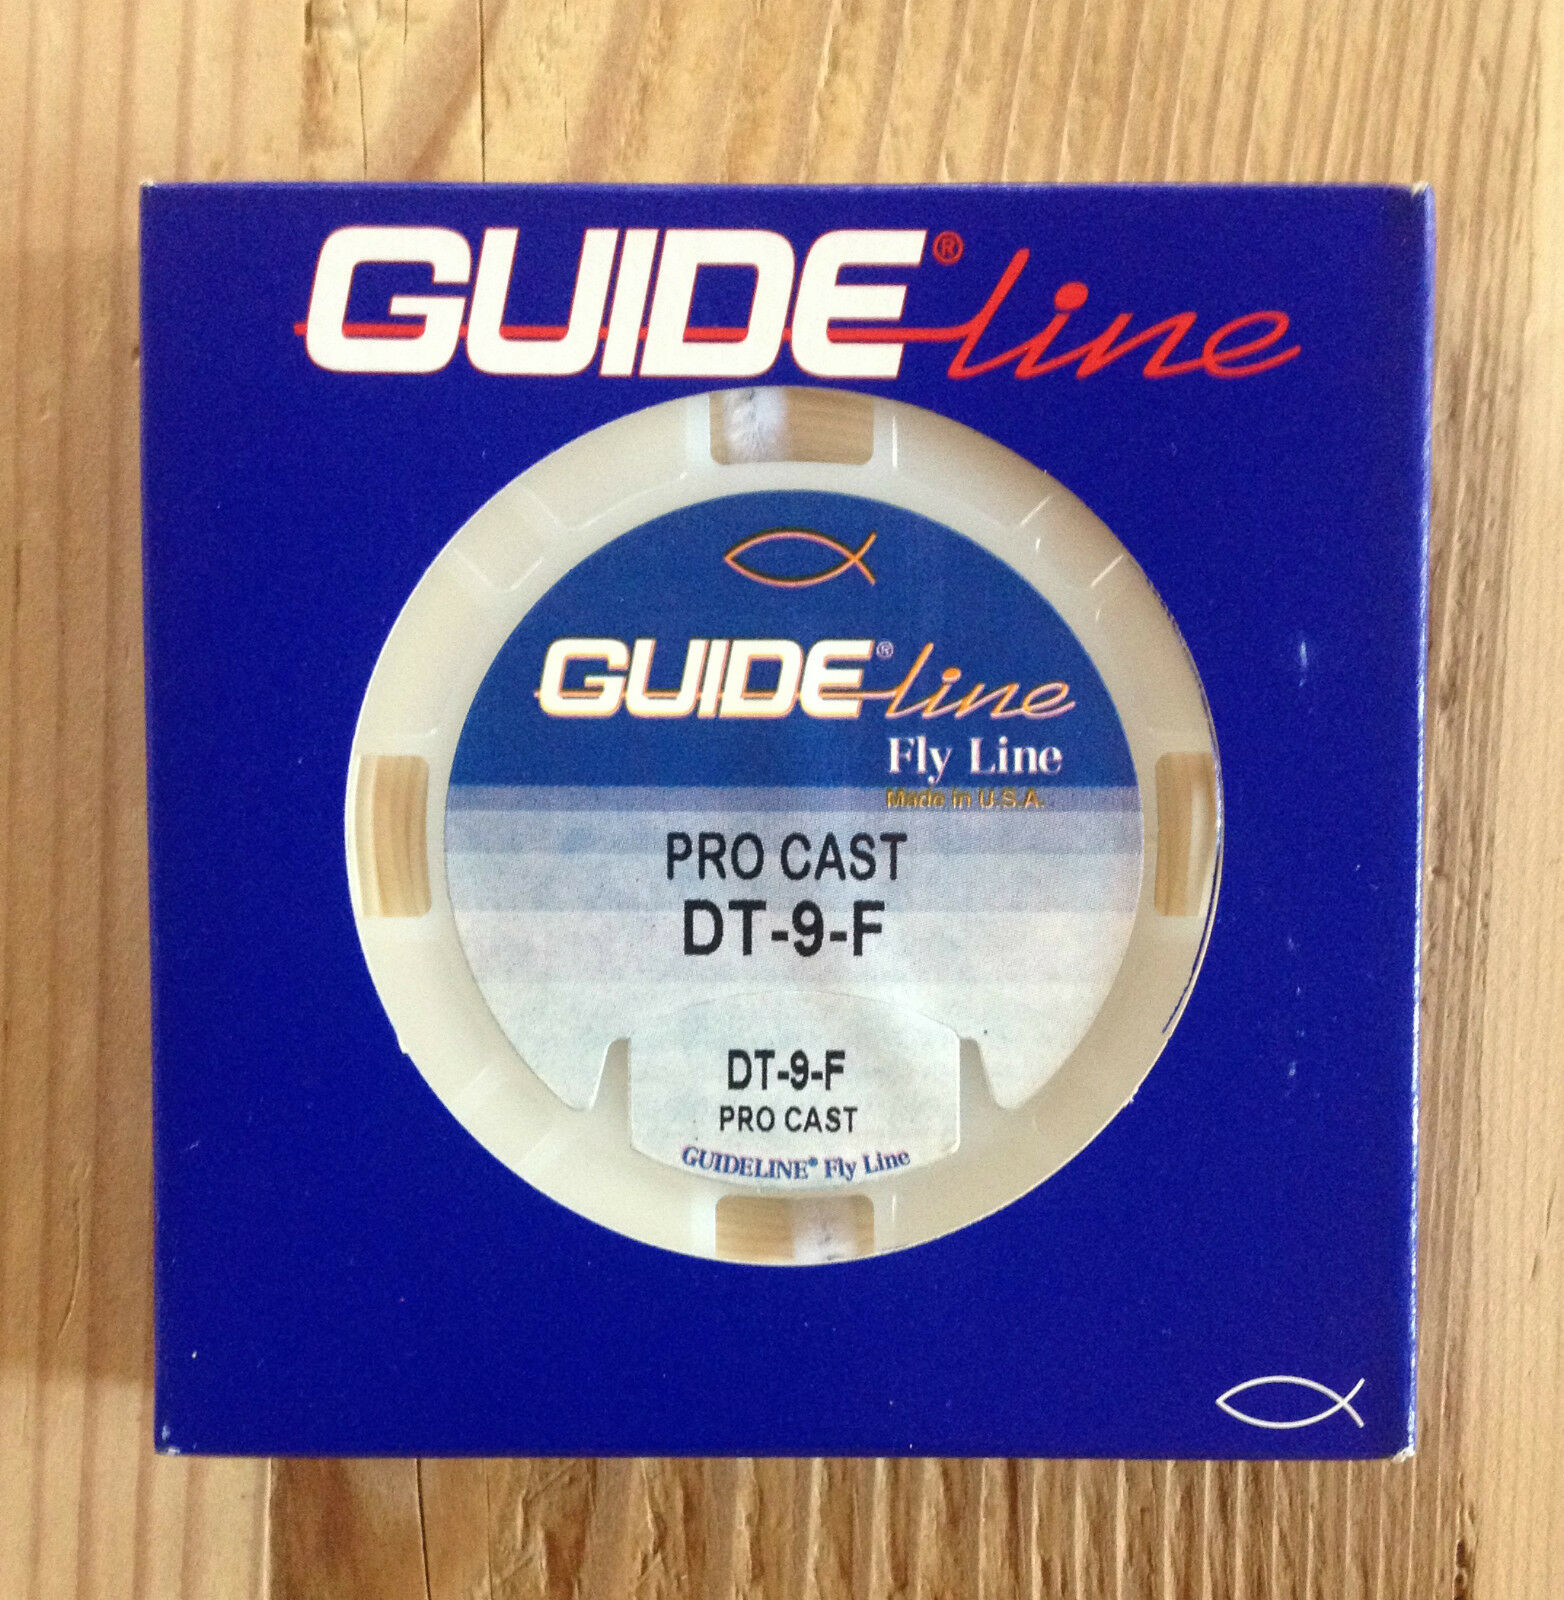 Double Taper Pro Cast -  Floating, 95FT, White DT-9-F   DT-10-F  find your favorite here